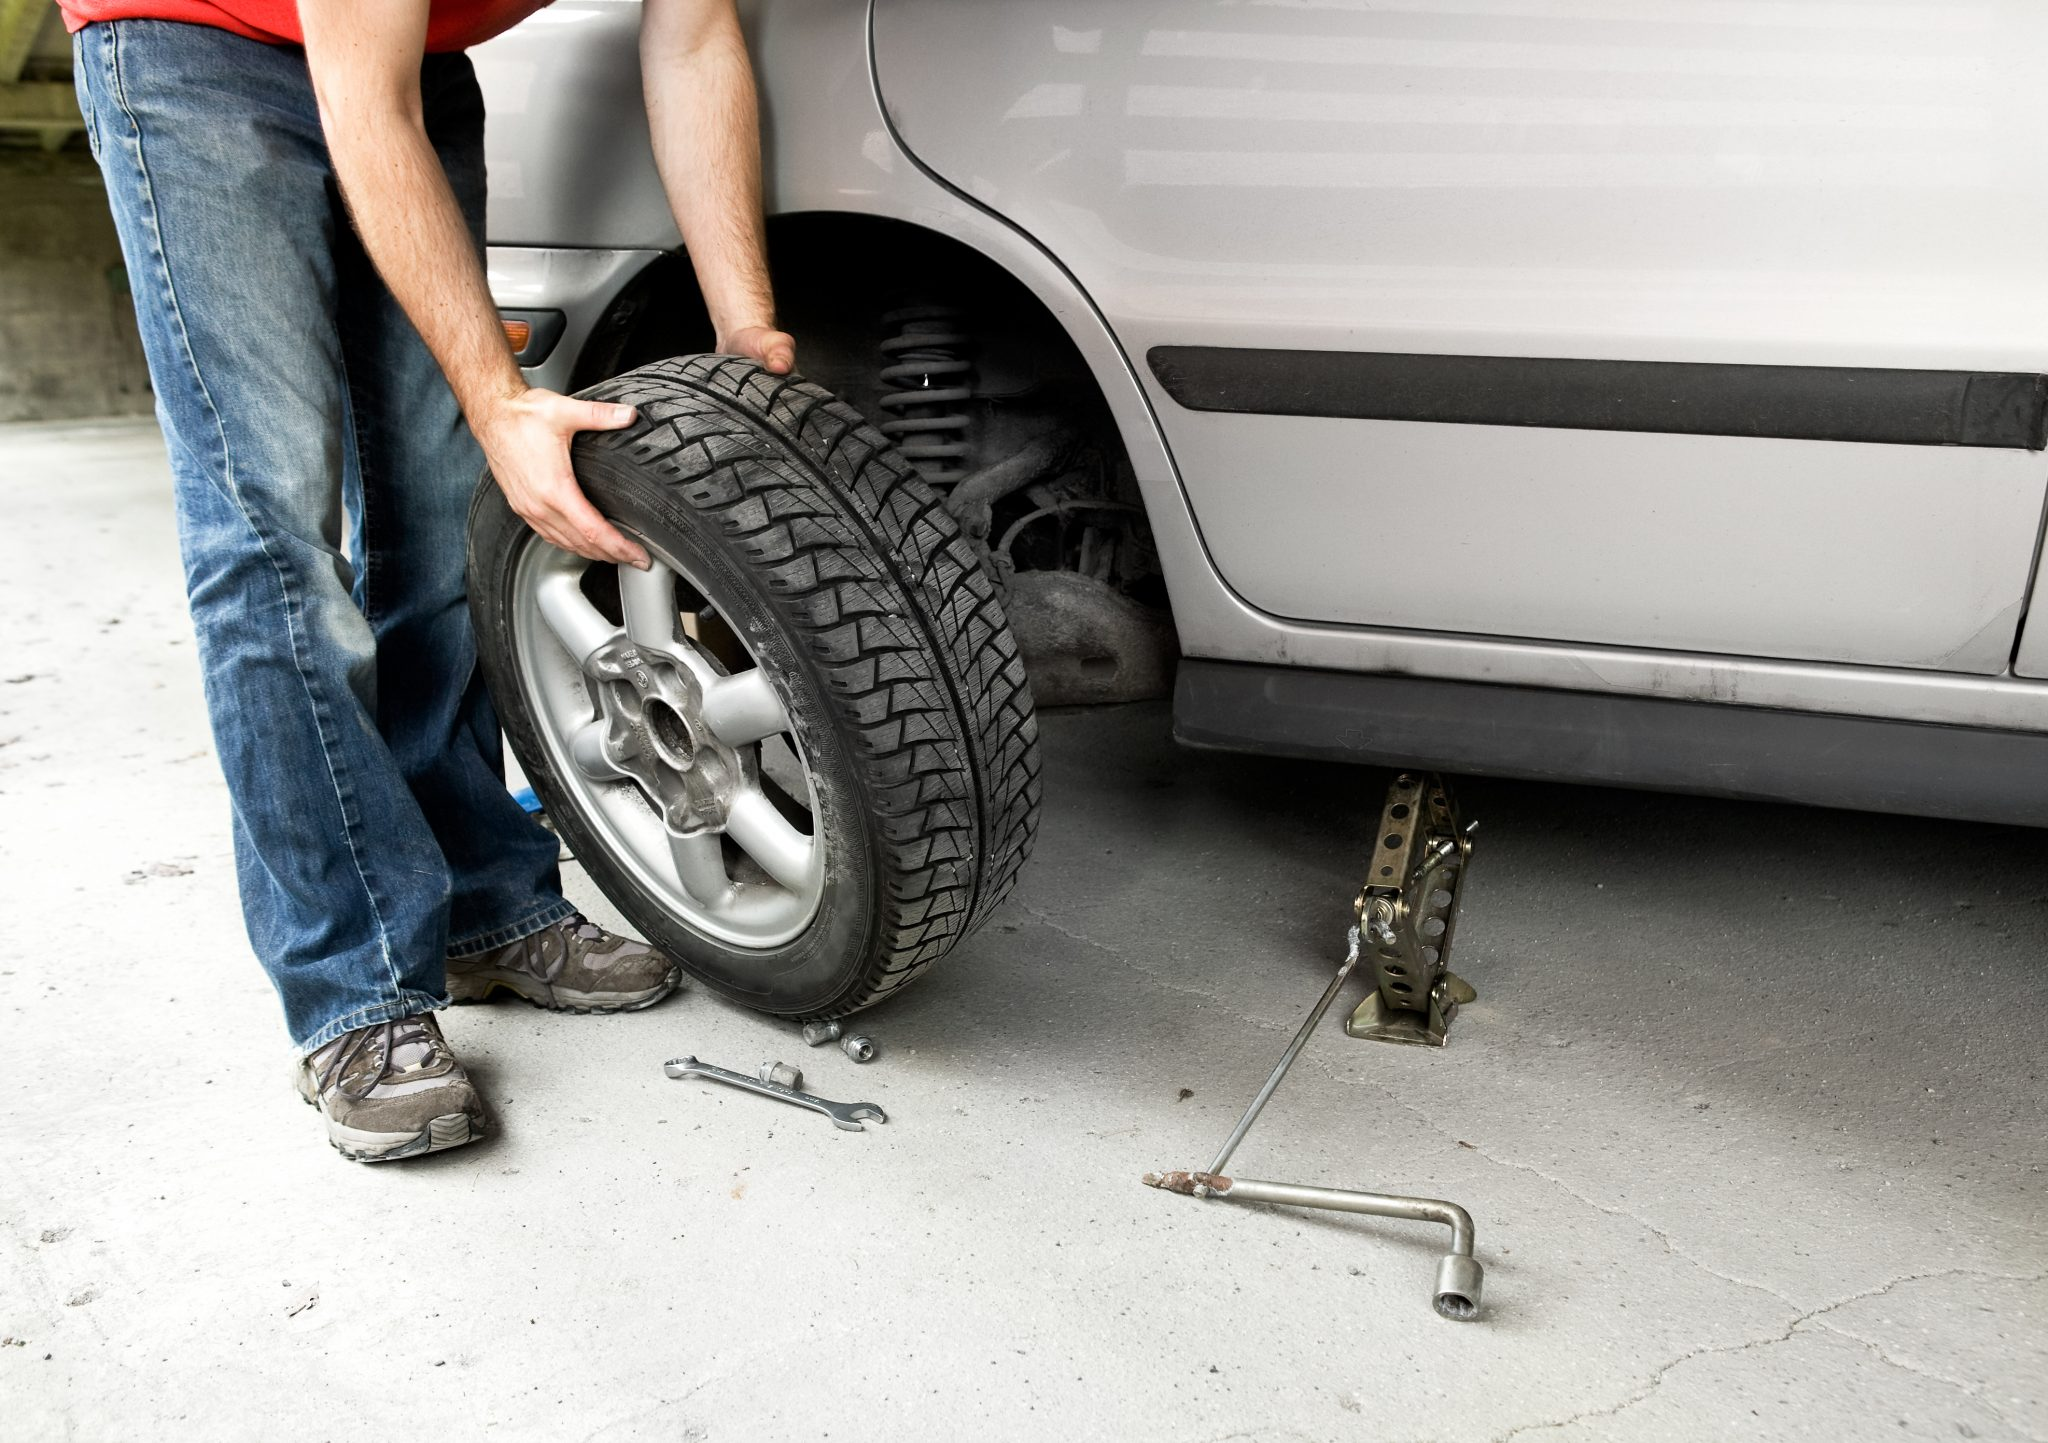 To Repair or Replace Your Tires? That is the Question